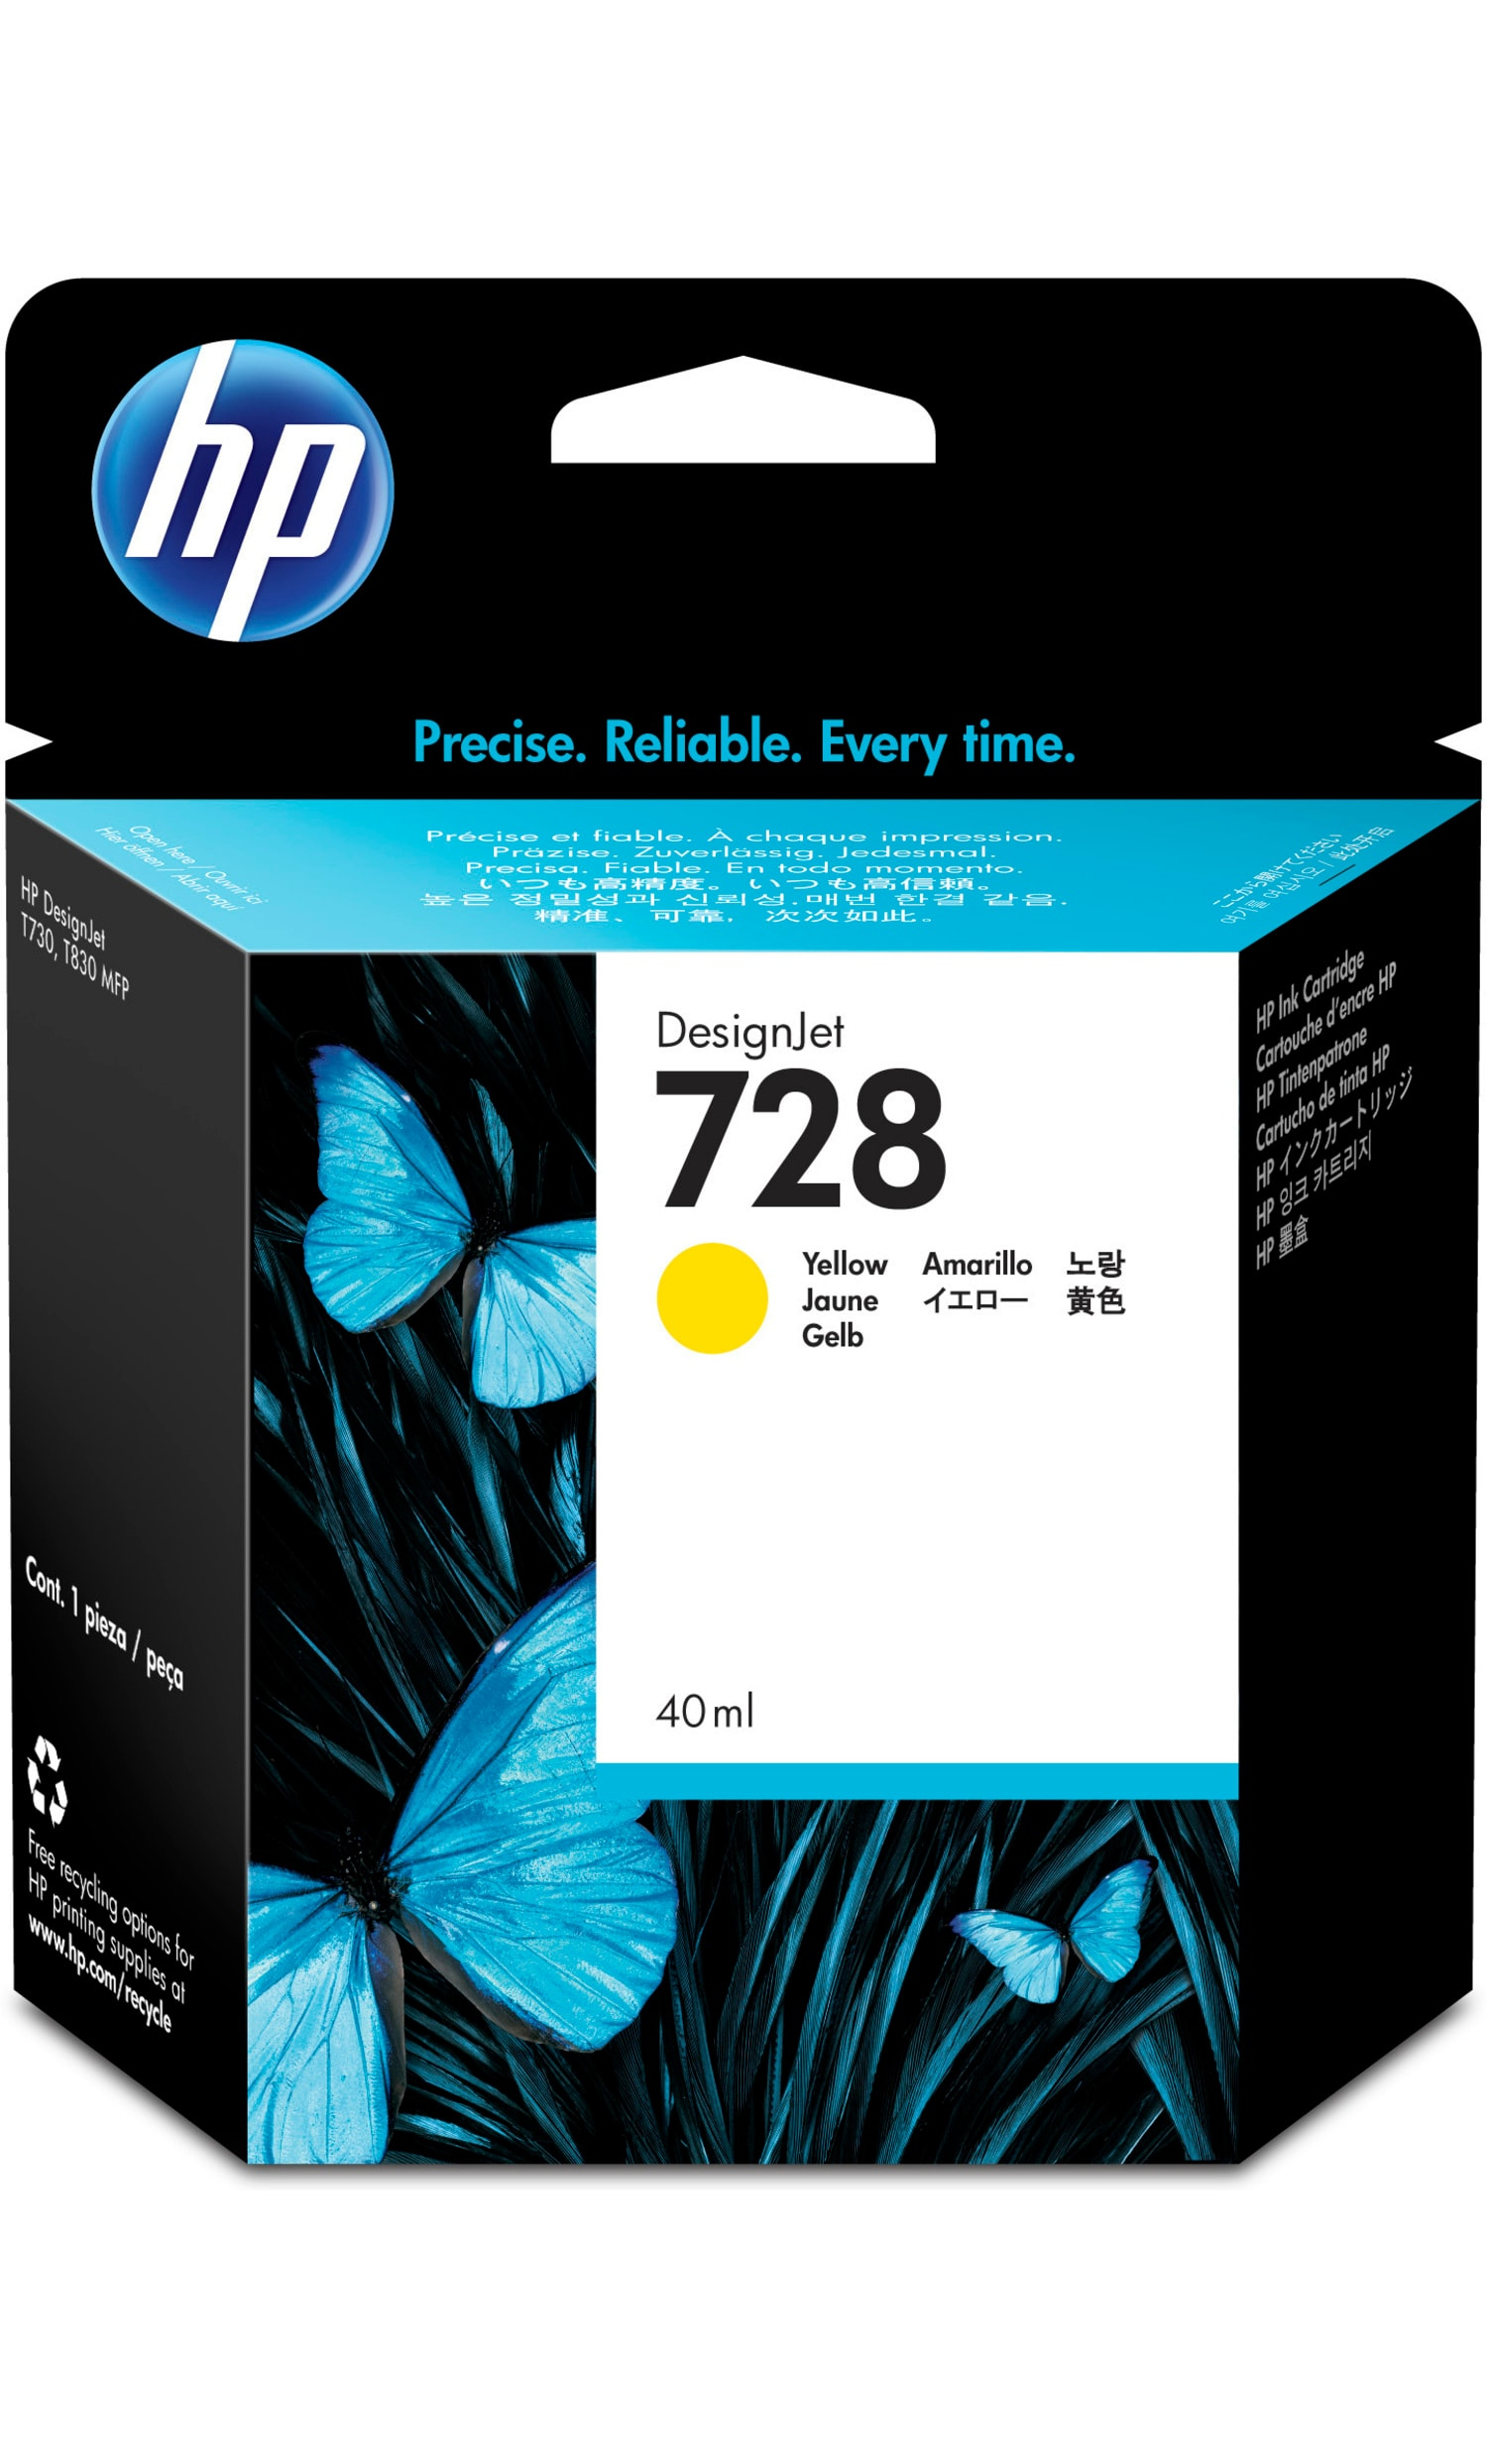 Hpf9j61a       Hp 728 40ml Yellow Ink         Hp 728 40ml Yellow Ink                                       - UF01